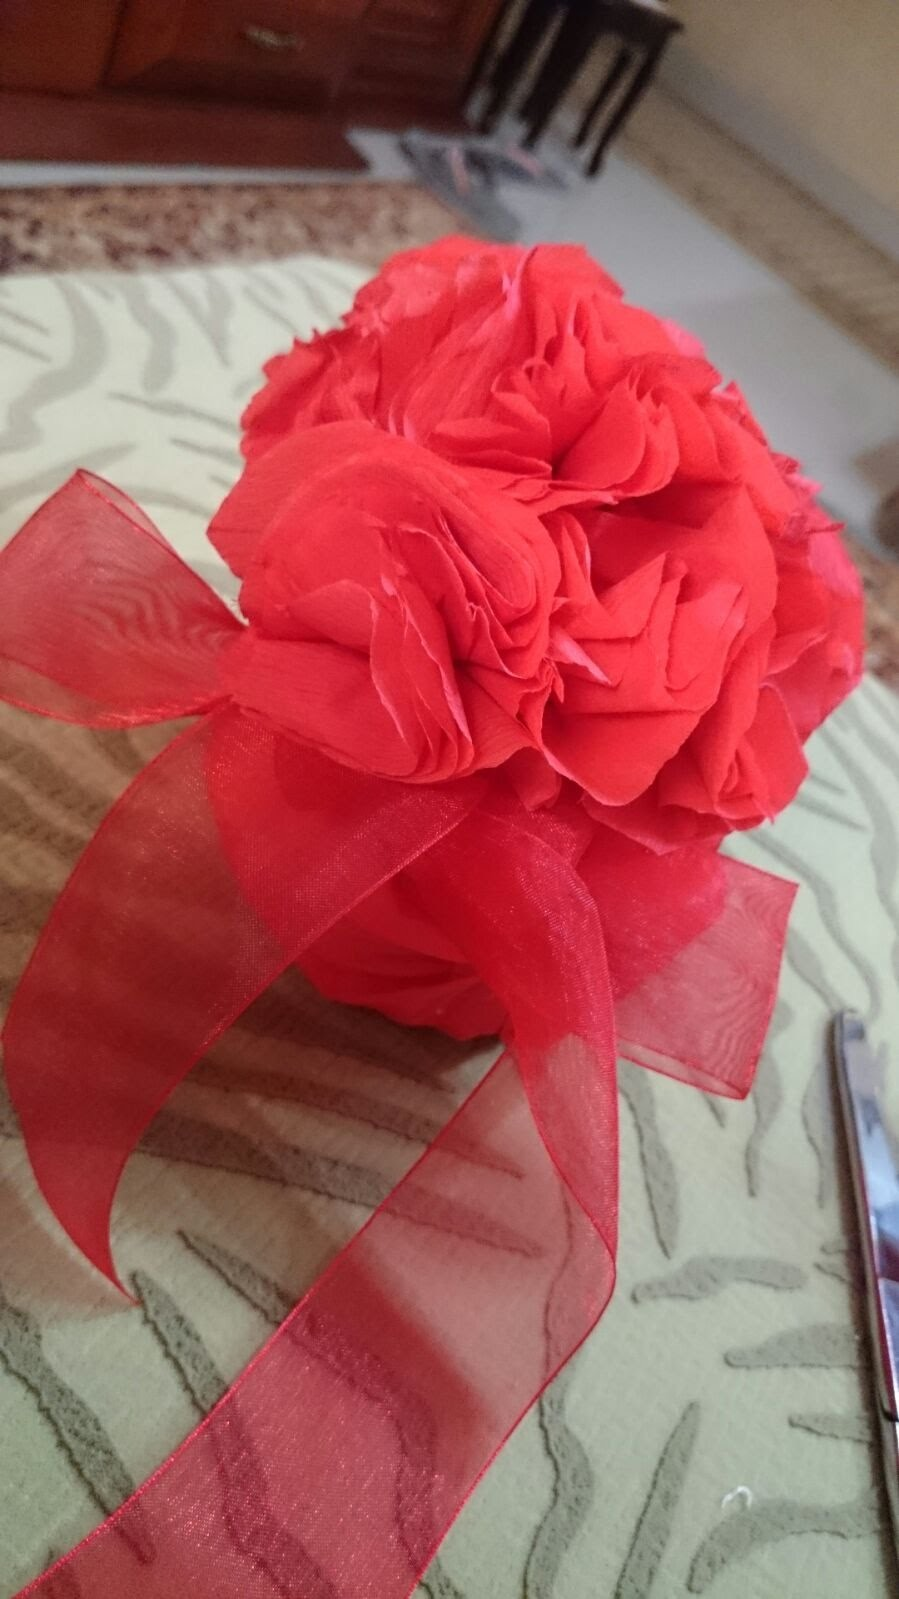 How to DIY Valentine's Day Decorations - Making Crepe Flowers - Tutorial .